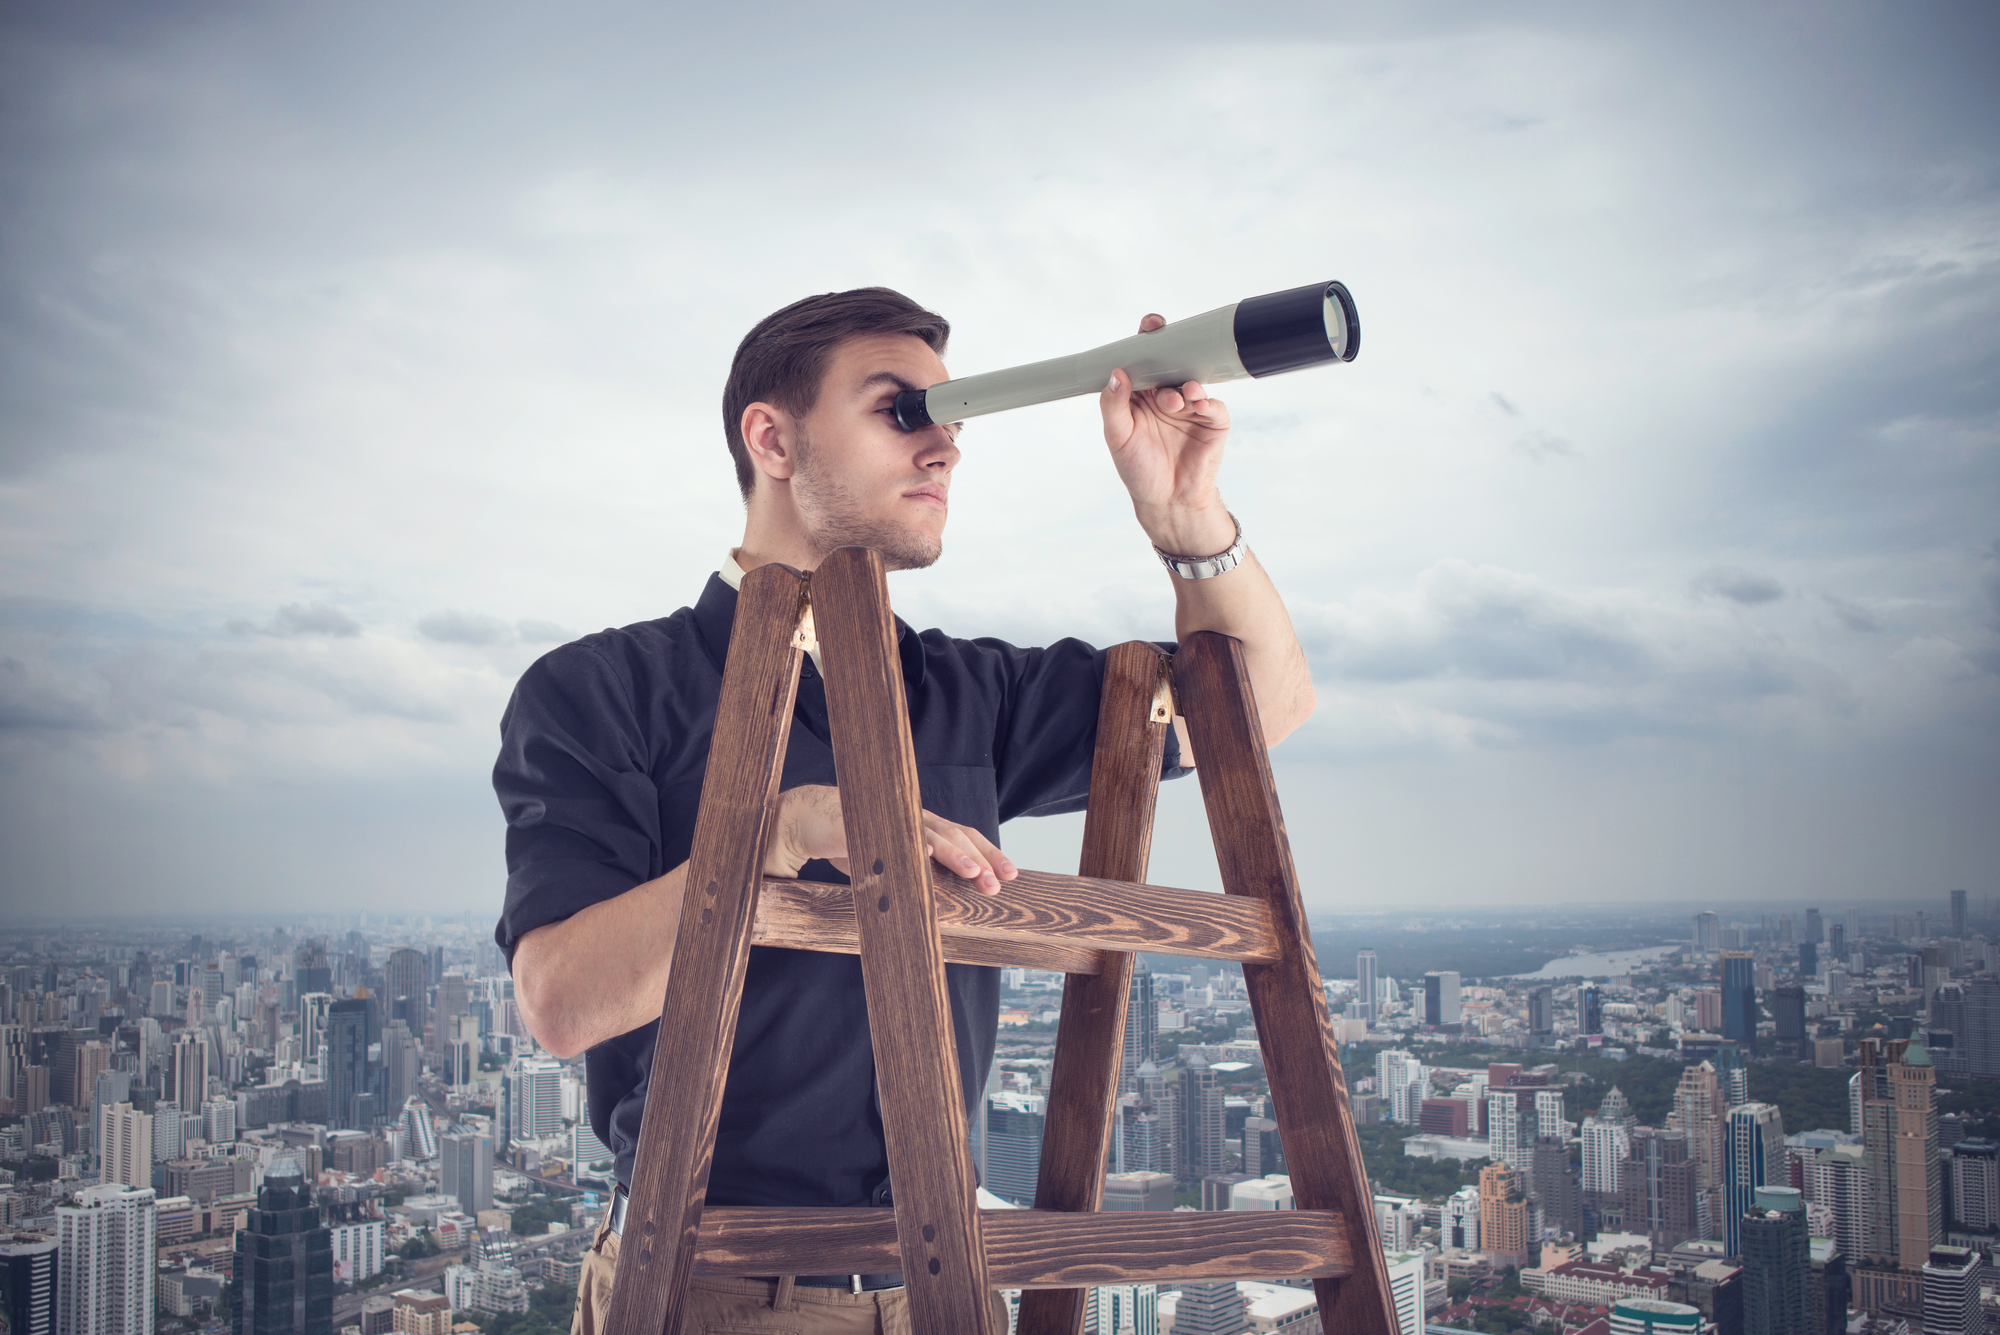 Young businessman looking for future opportunities through the spyglass standing on stairs